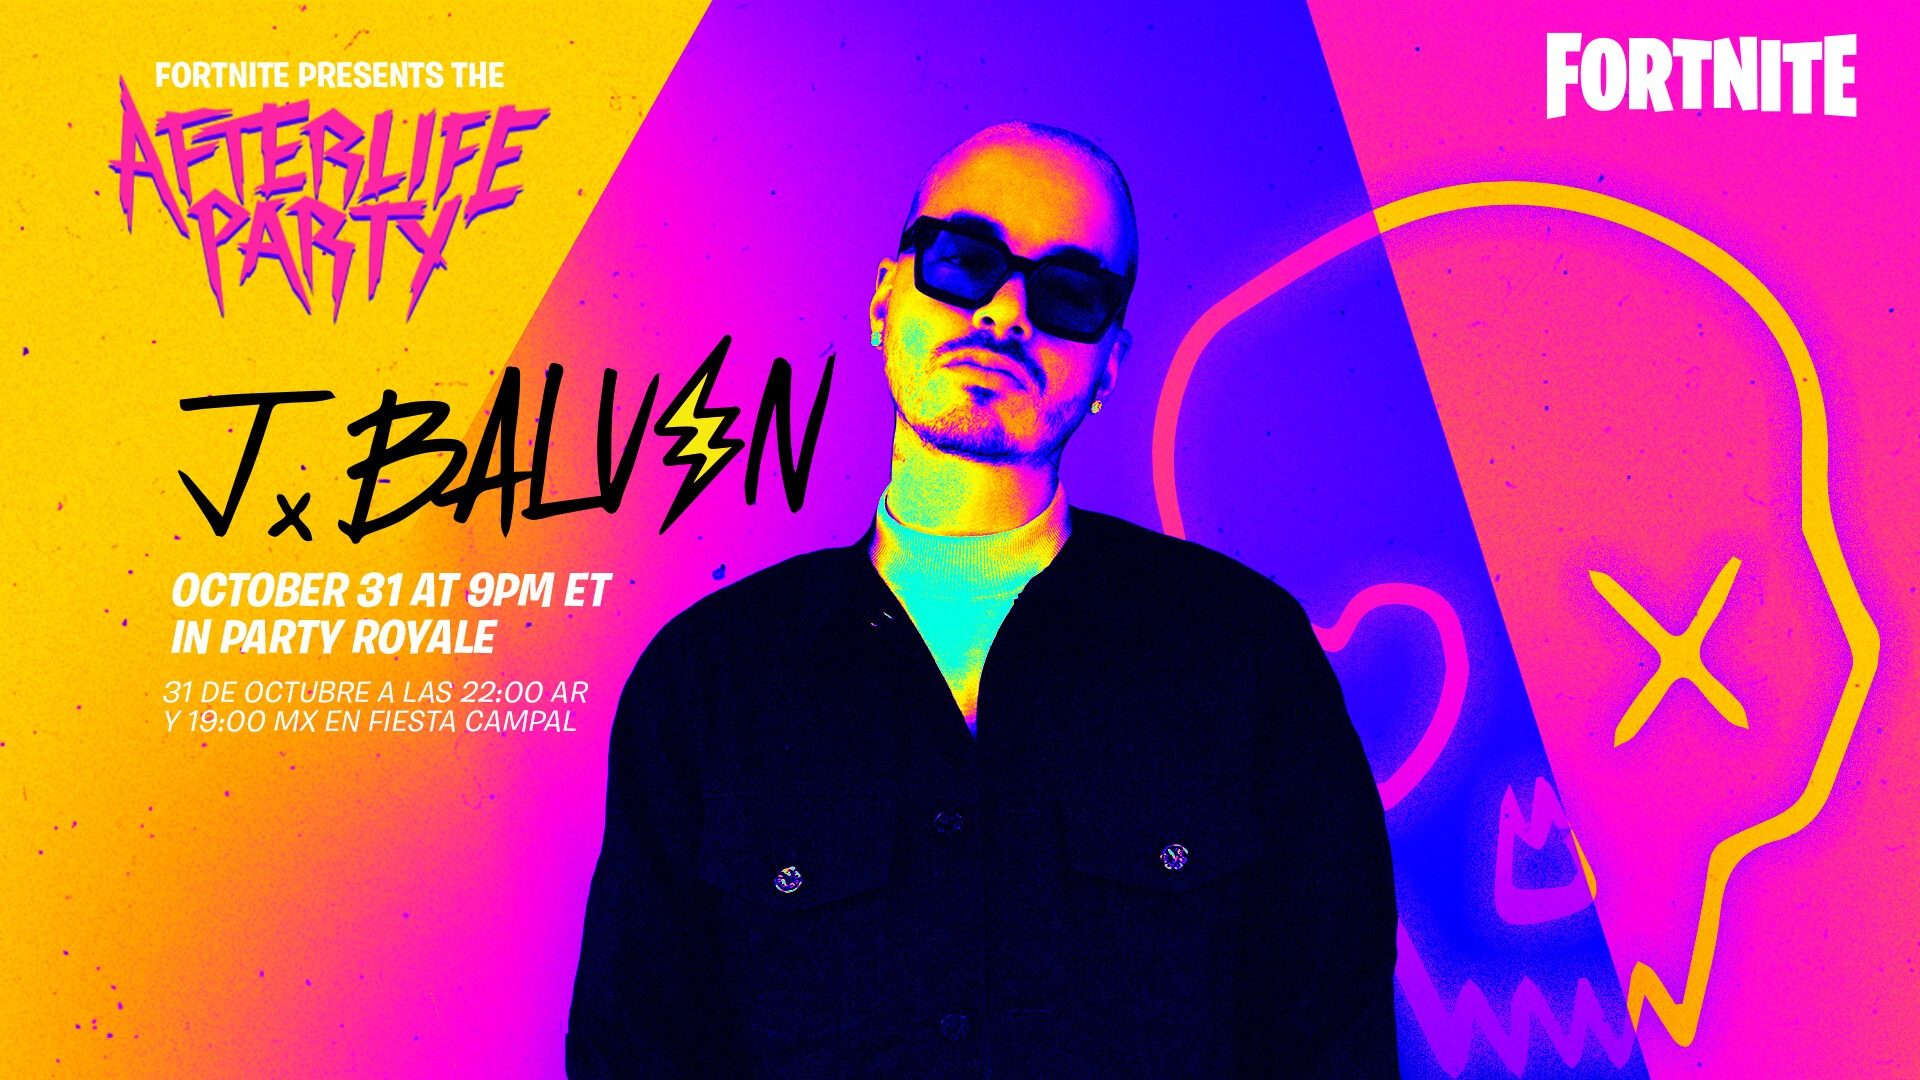 j-balvin-performance-in-fortnitemares-afterlife-party-1920x1080-324070069-7436053